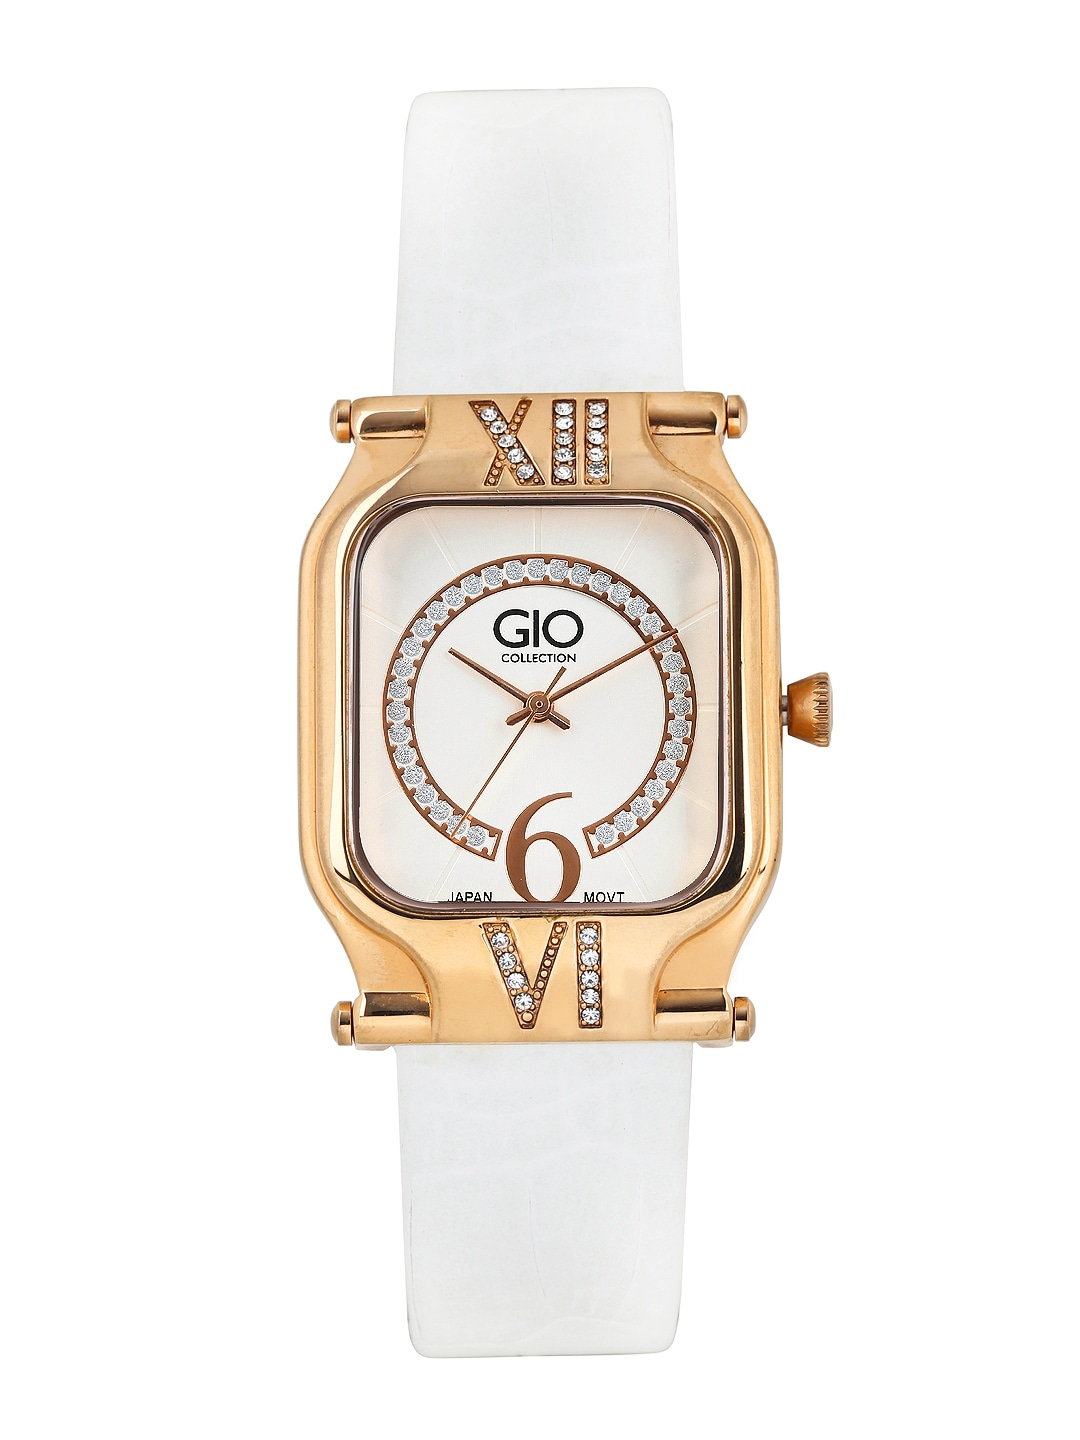 GIO COLLECTION Women Off-White Dial Watch G0038-04 image